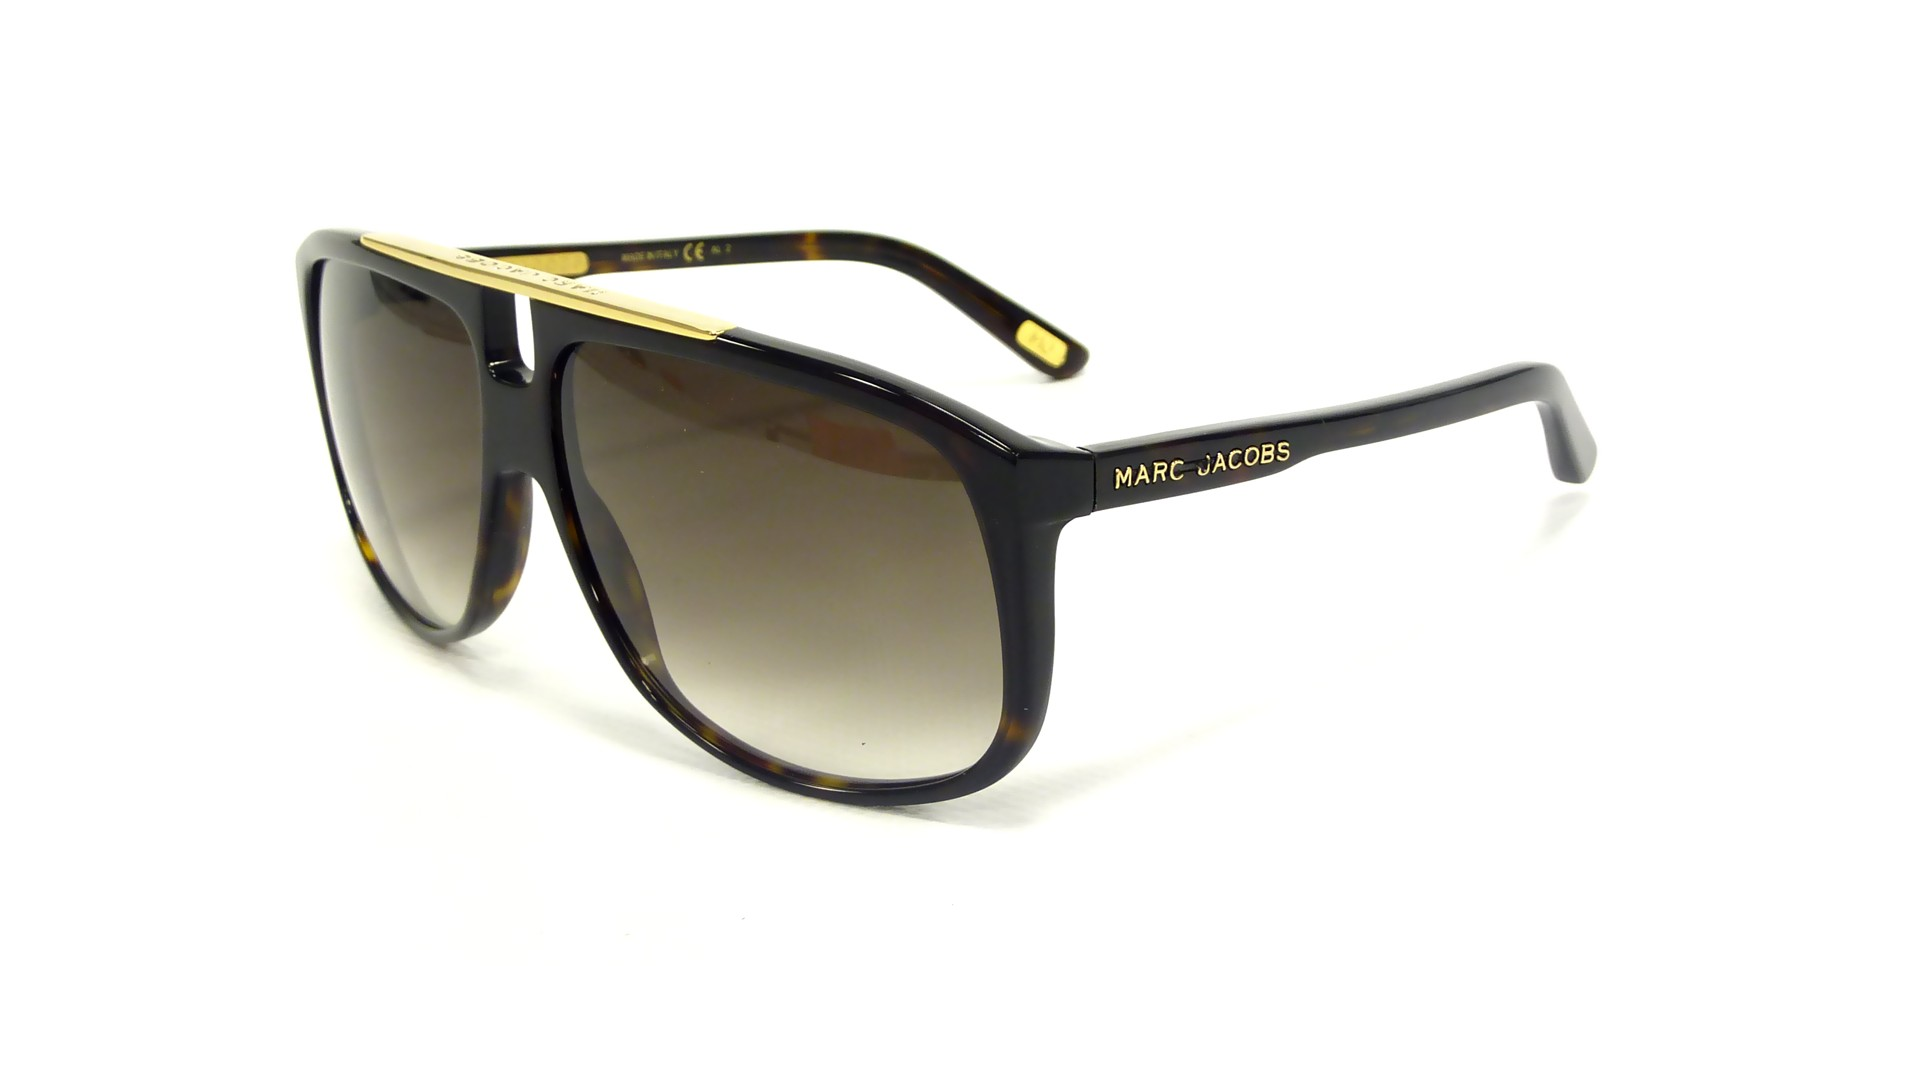 7ba6ab7b149849 Sunglasses Marc Jacobs MJ252S 086 JS 60-13 Tortoise Large Gradient